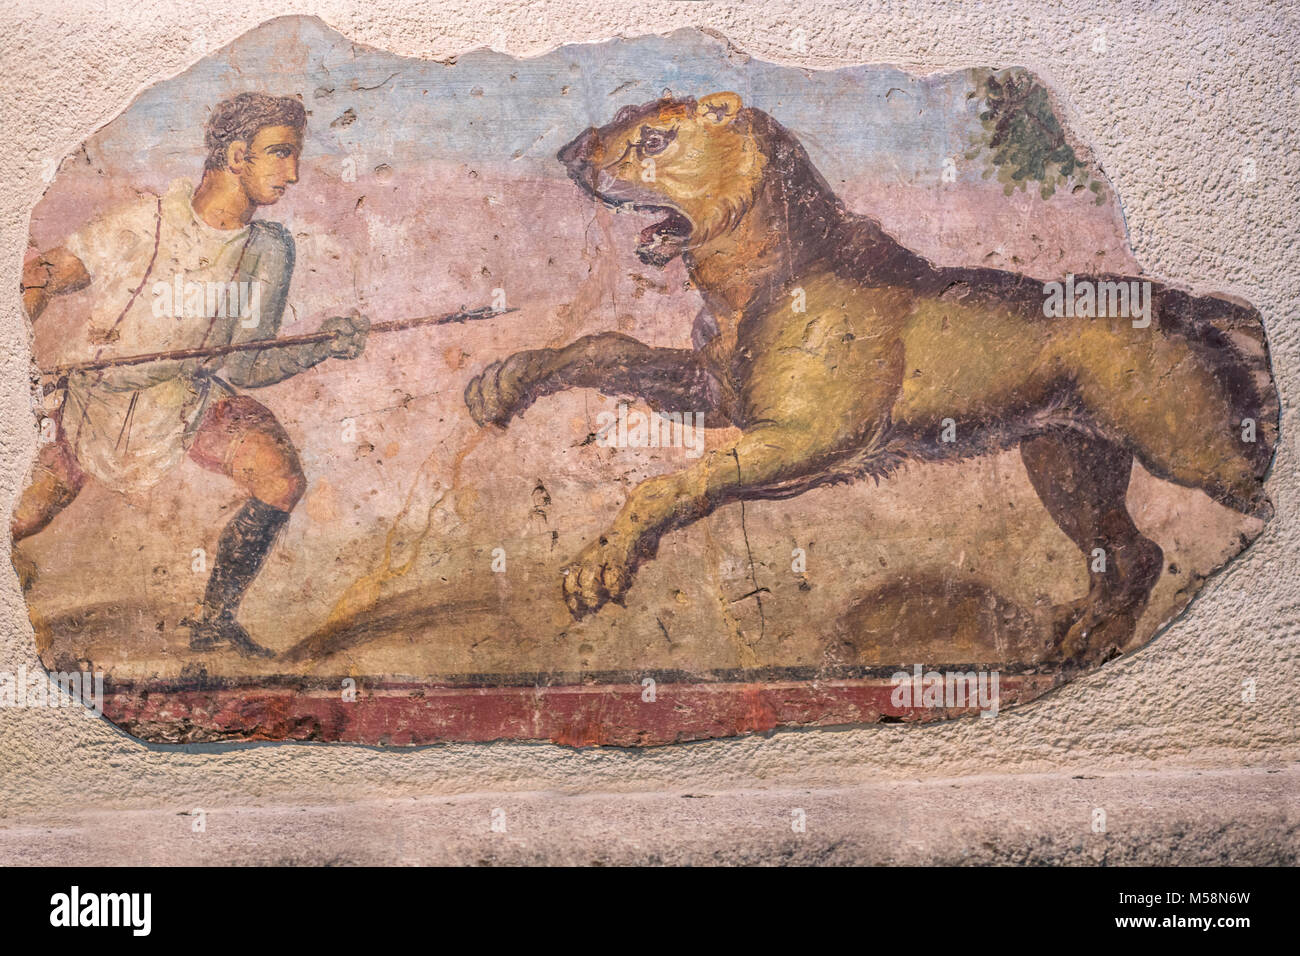 Merida, Spain - December 20th, 2017: Hunter with lioness painting at National Museum of Roman Art in Merida, Spain - Stock Image